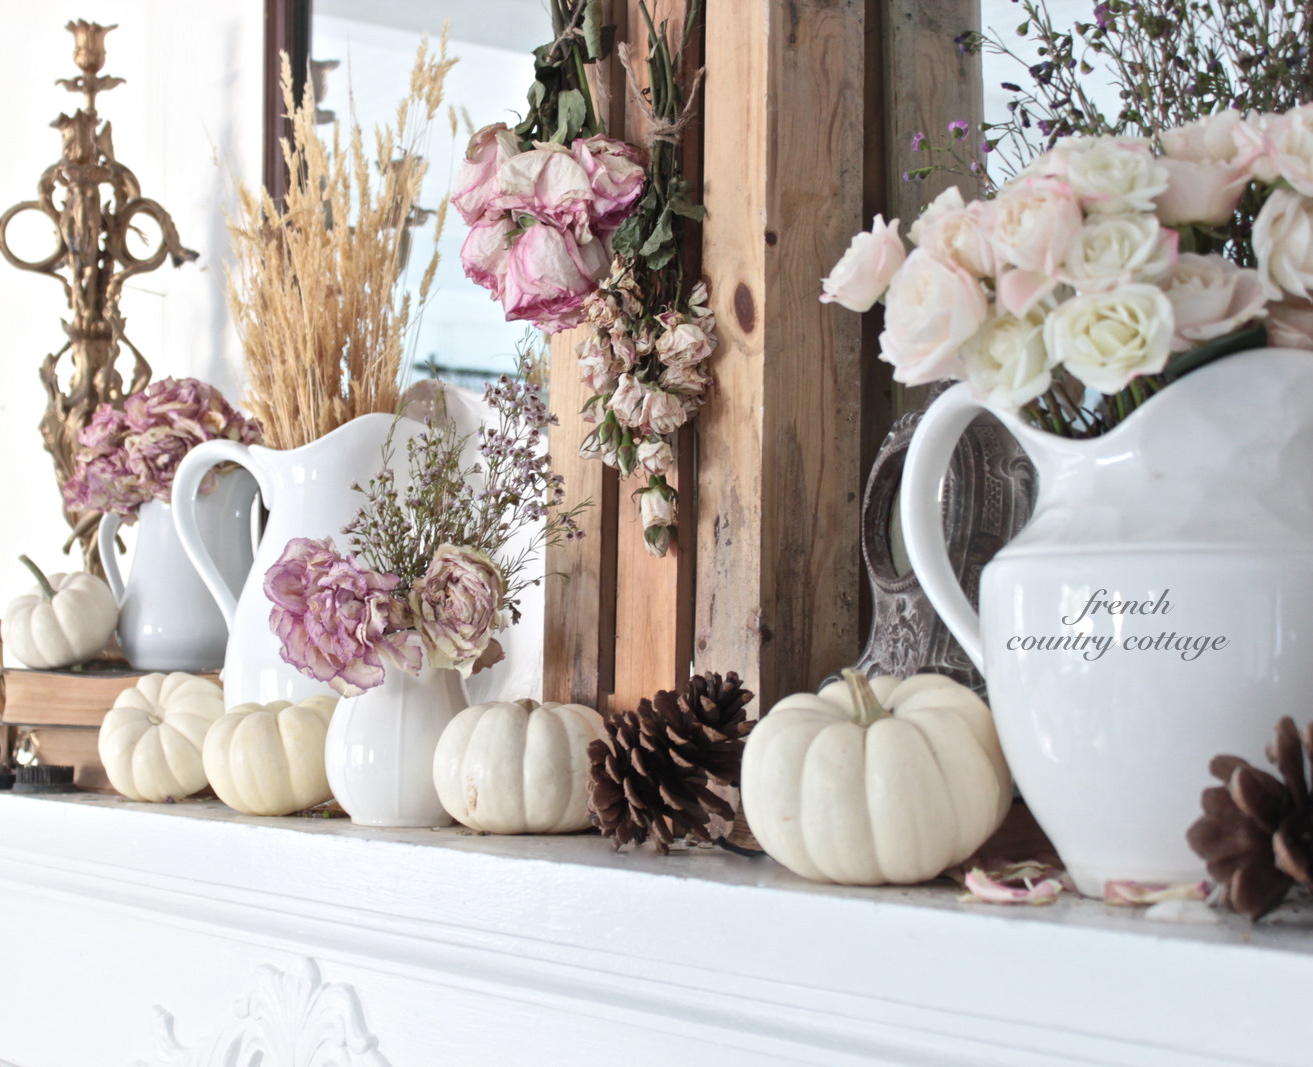 Autumn at french country cottage french country cottage for Autumn flower decoration